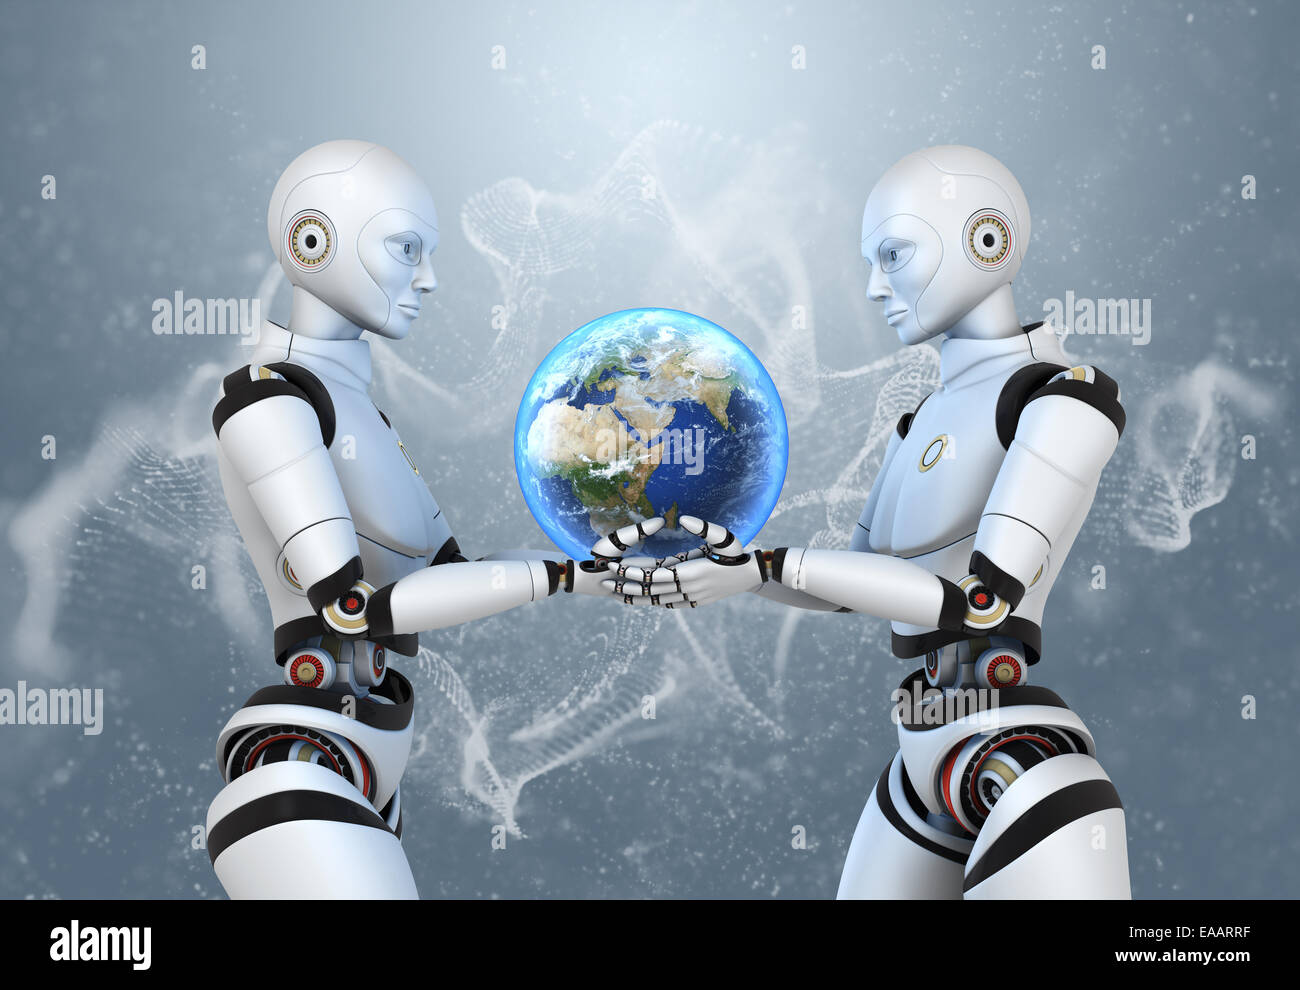 Two cyborgs holding the Earth in their hands - Stock Image